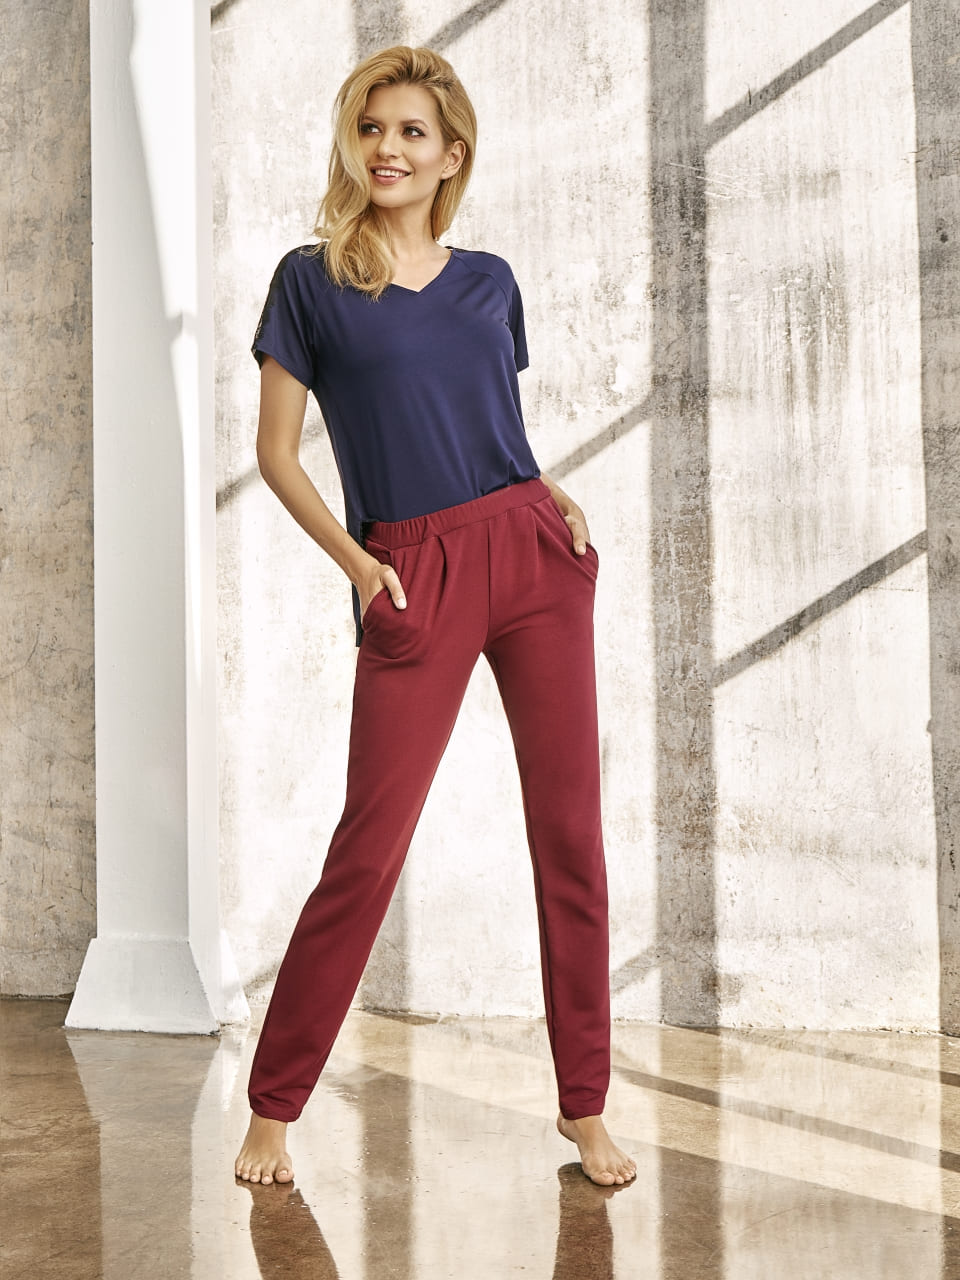 OZ 211 Maglia XS-3XL colour 02 · 03 · 76 <br />OZ 234 Pantaloni XS-3XL colour 03 · 72 · 75